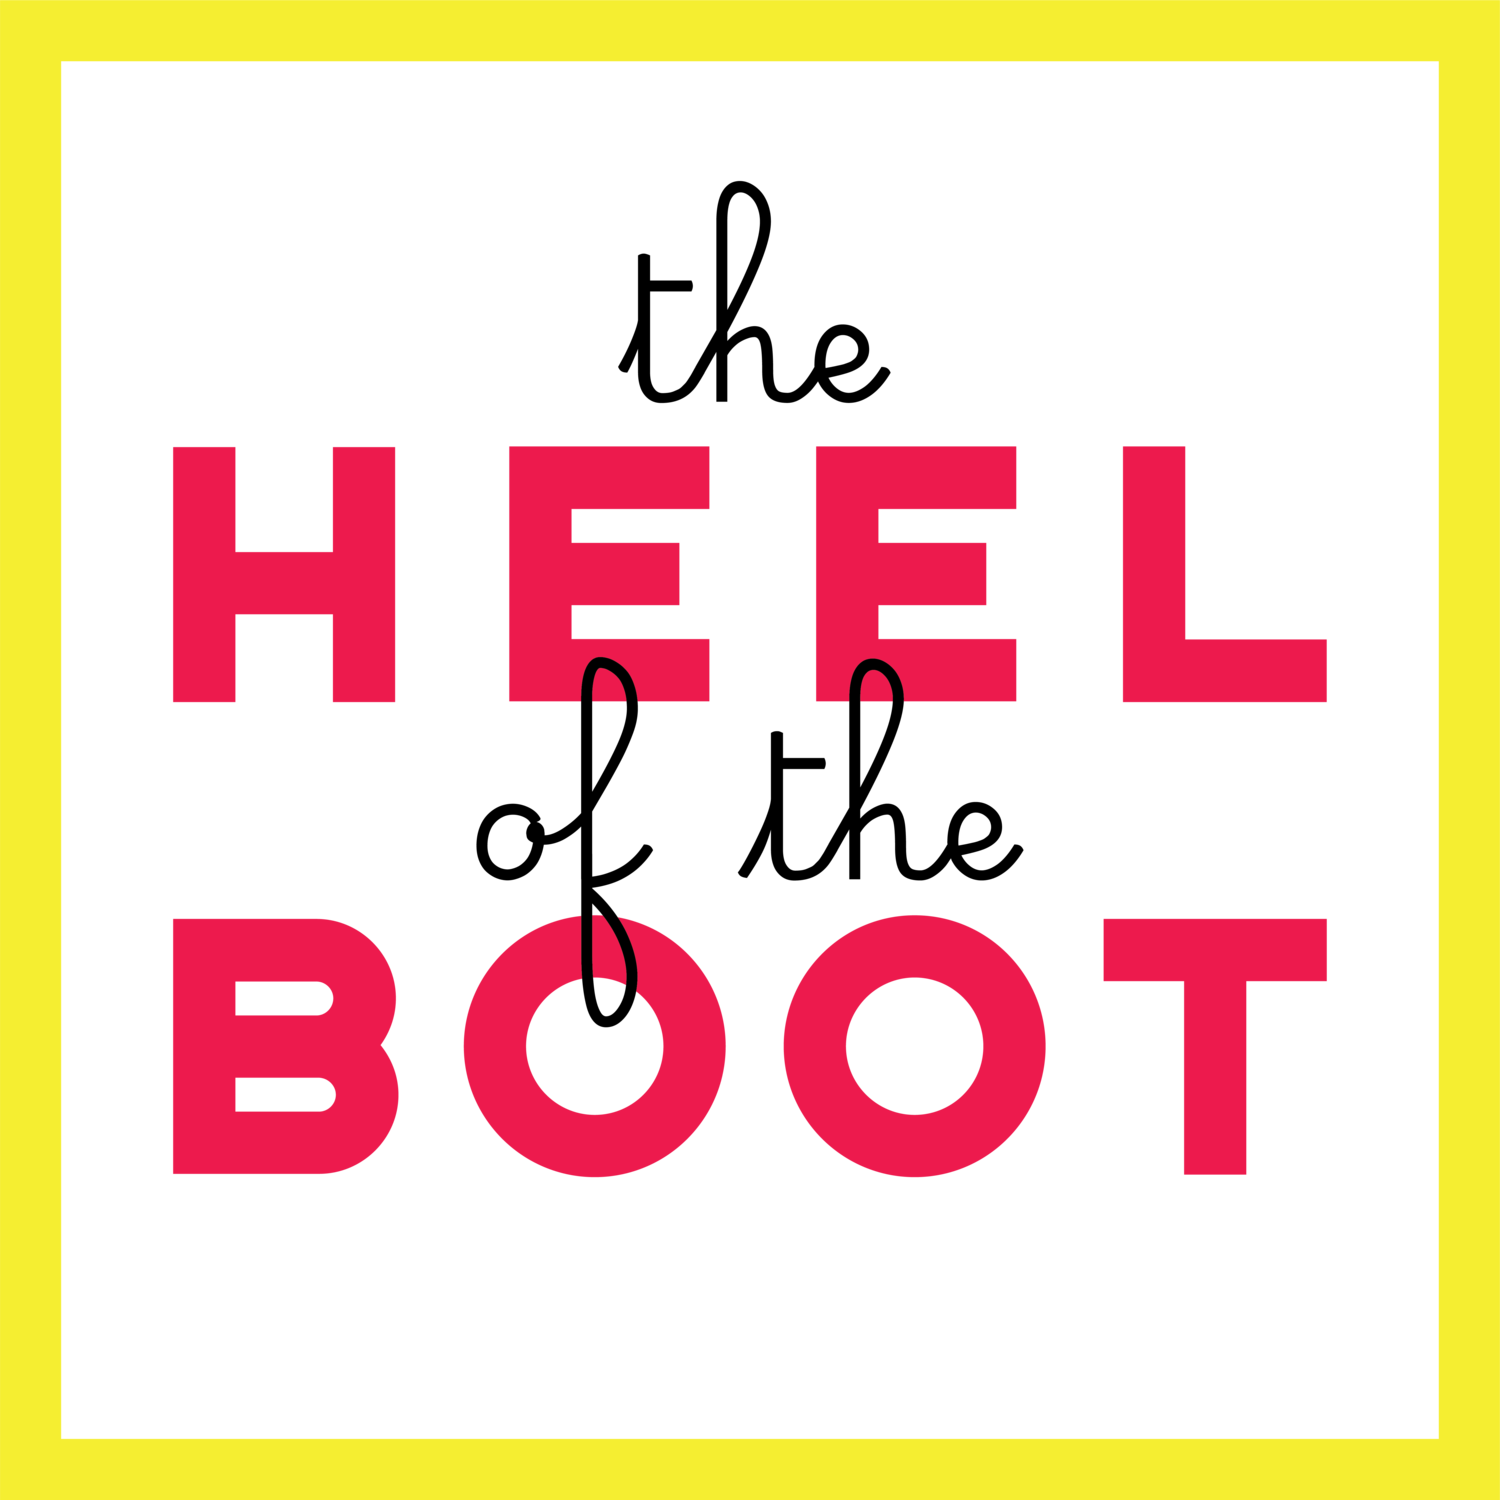 Contact — The Heel of The Boot - Southern Italian Food The Heel of